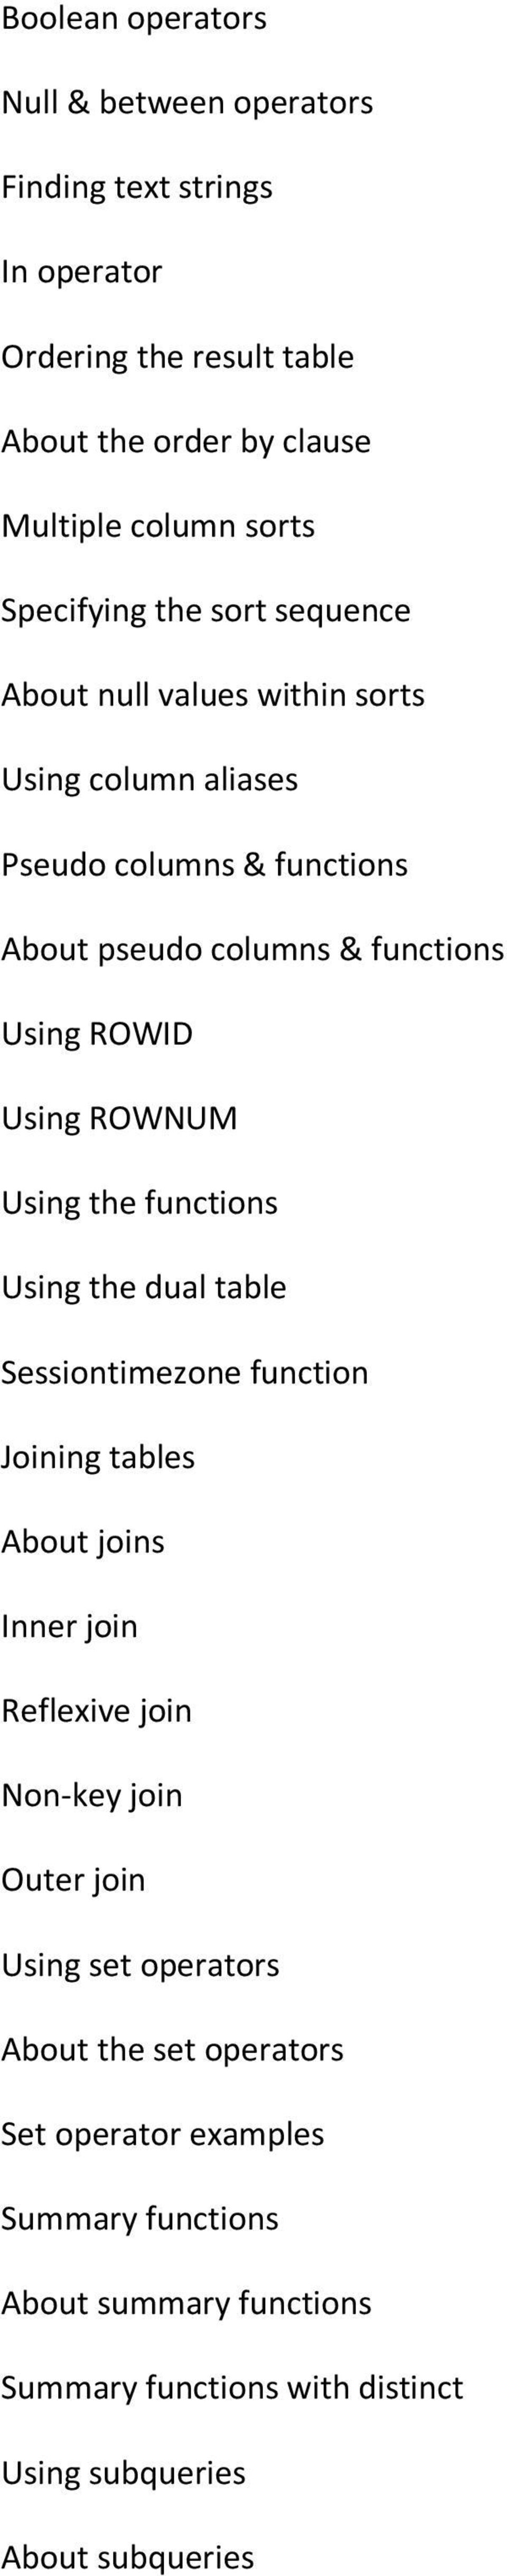 Using ROWNUM Using the functions Using the dual table Sessiontimezone function Joining tables About joins Inner join Reflexive join Non-key join Outer join